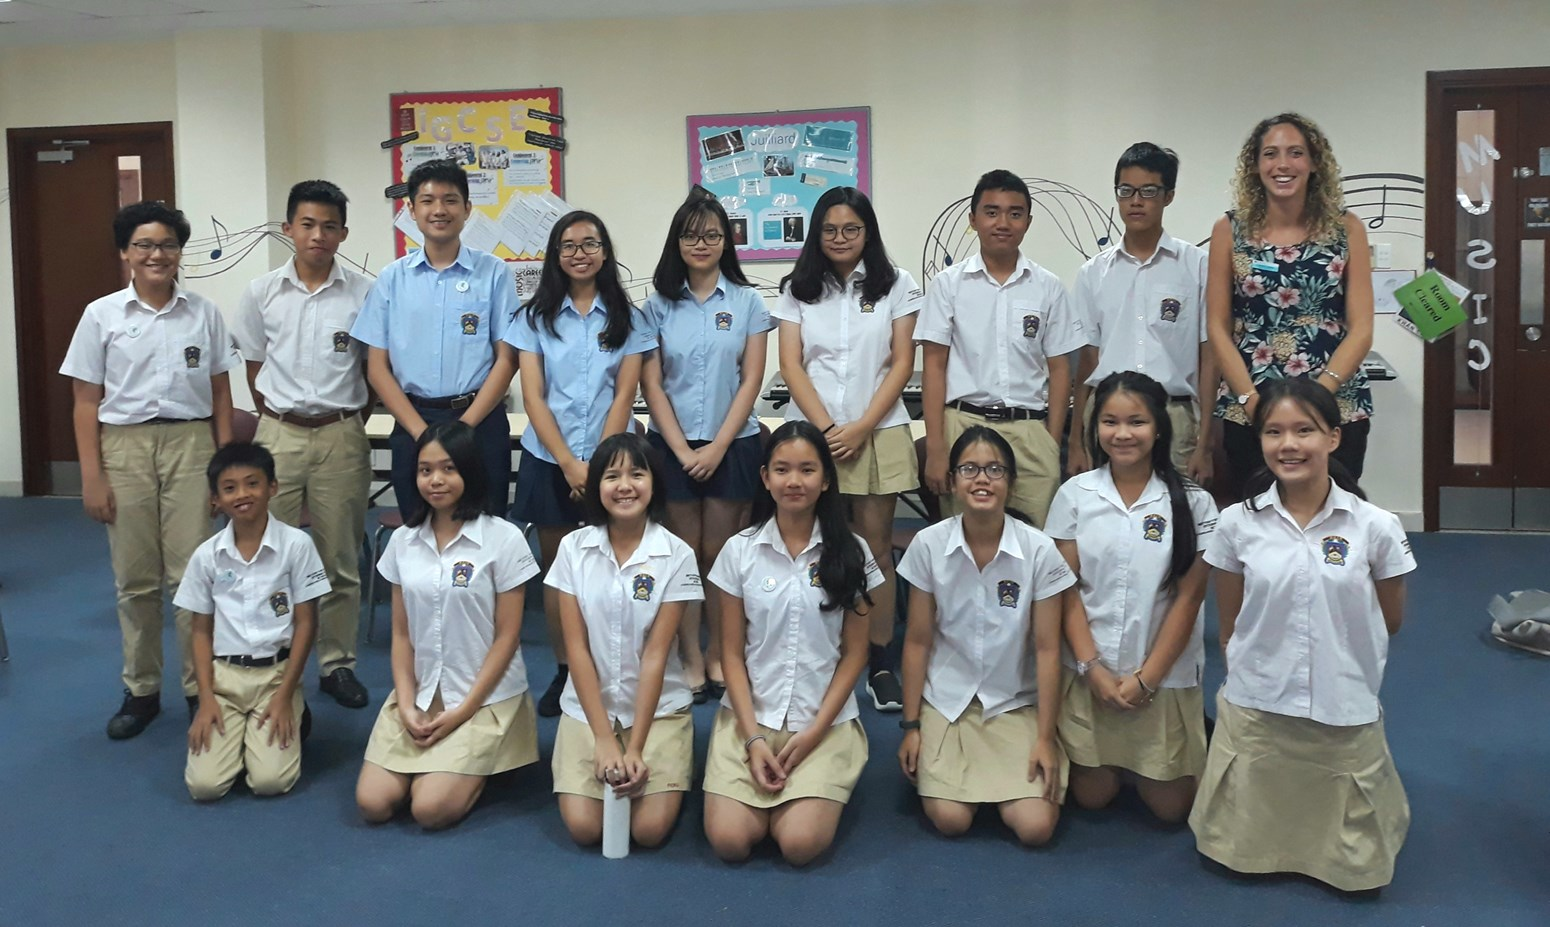 BVIS HCMC Secondary Student Council 2018